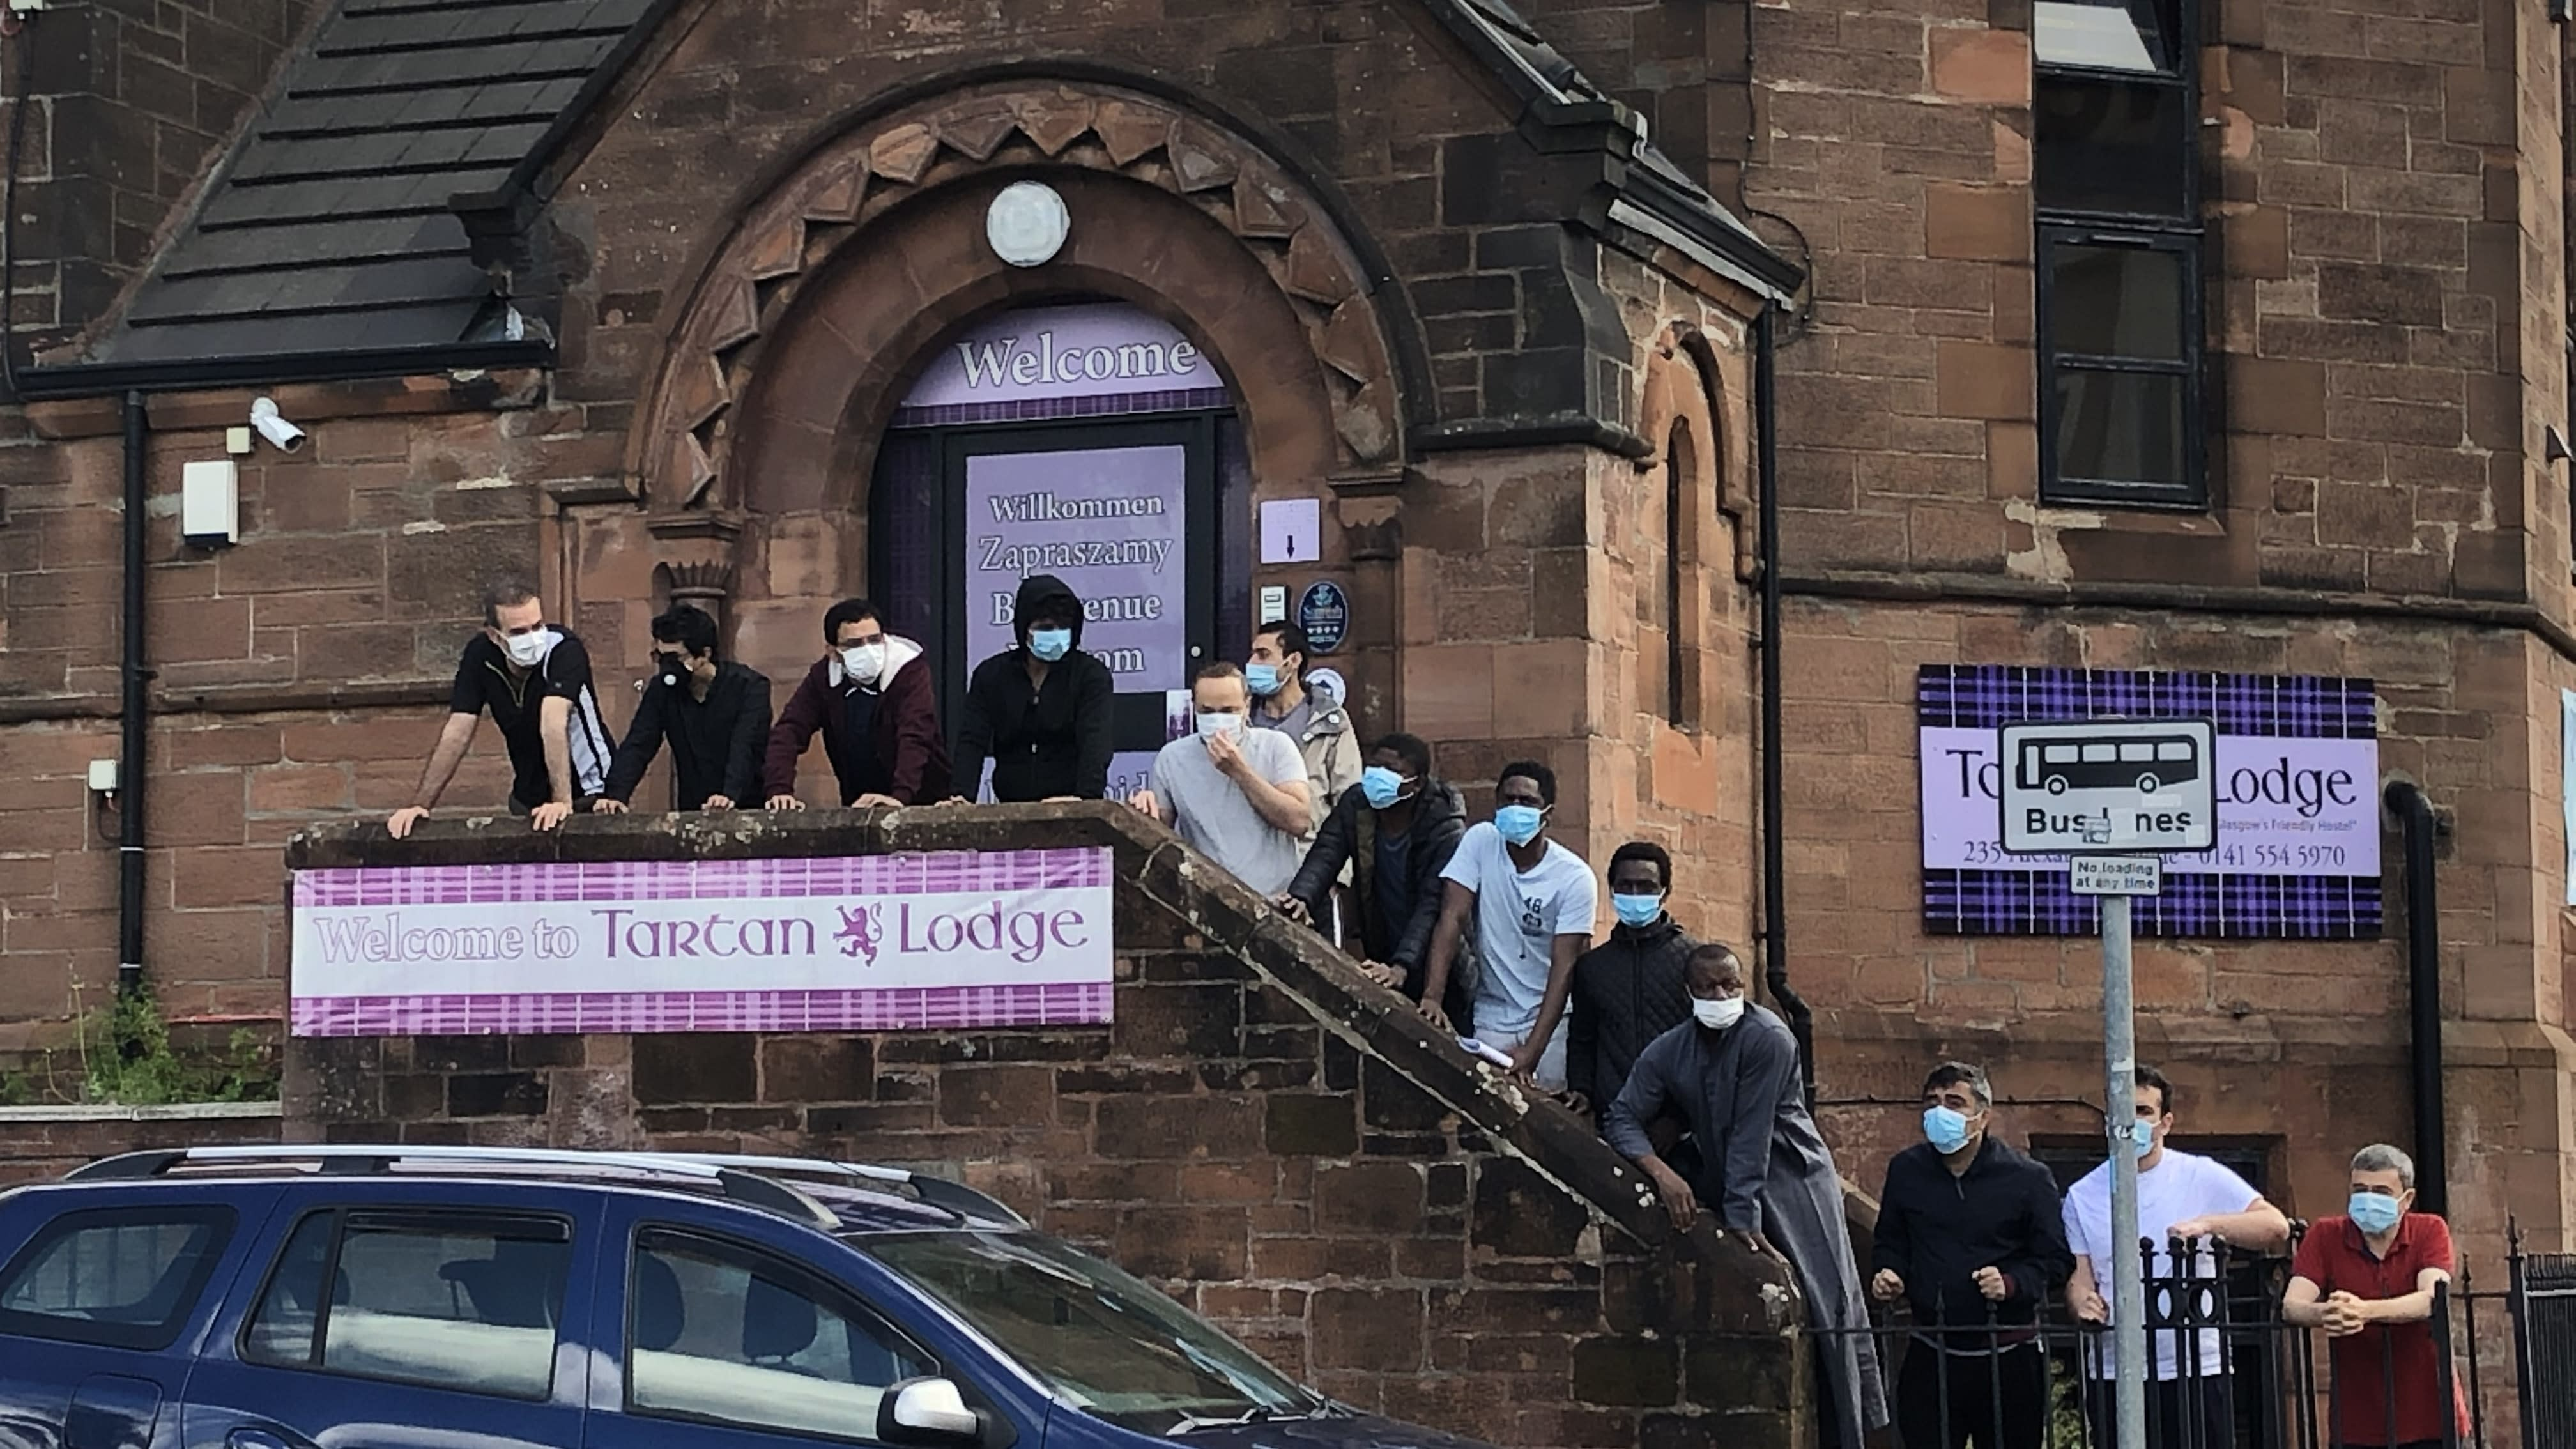 Asylum seekers at centre of humanitarian crisis in Glasgow, charity warns